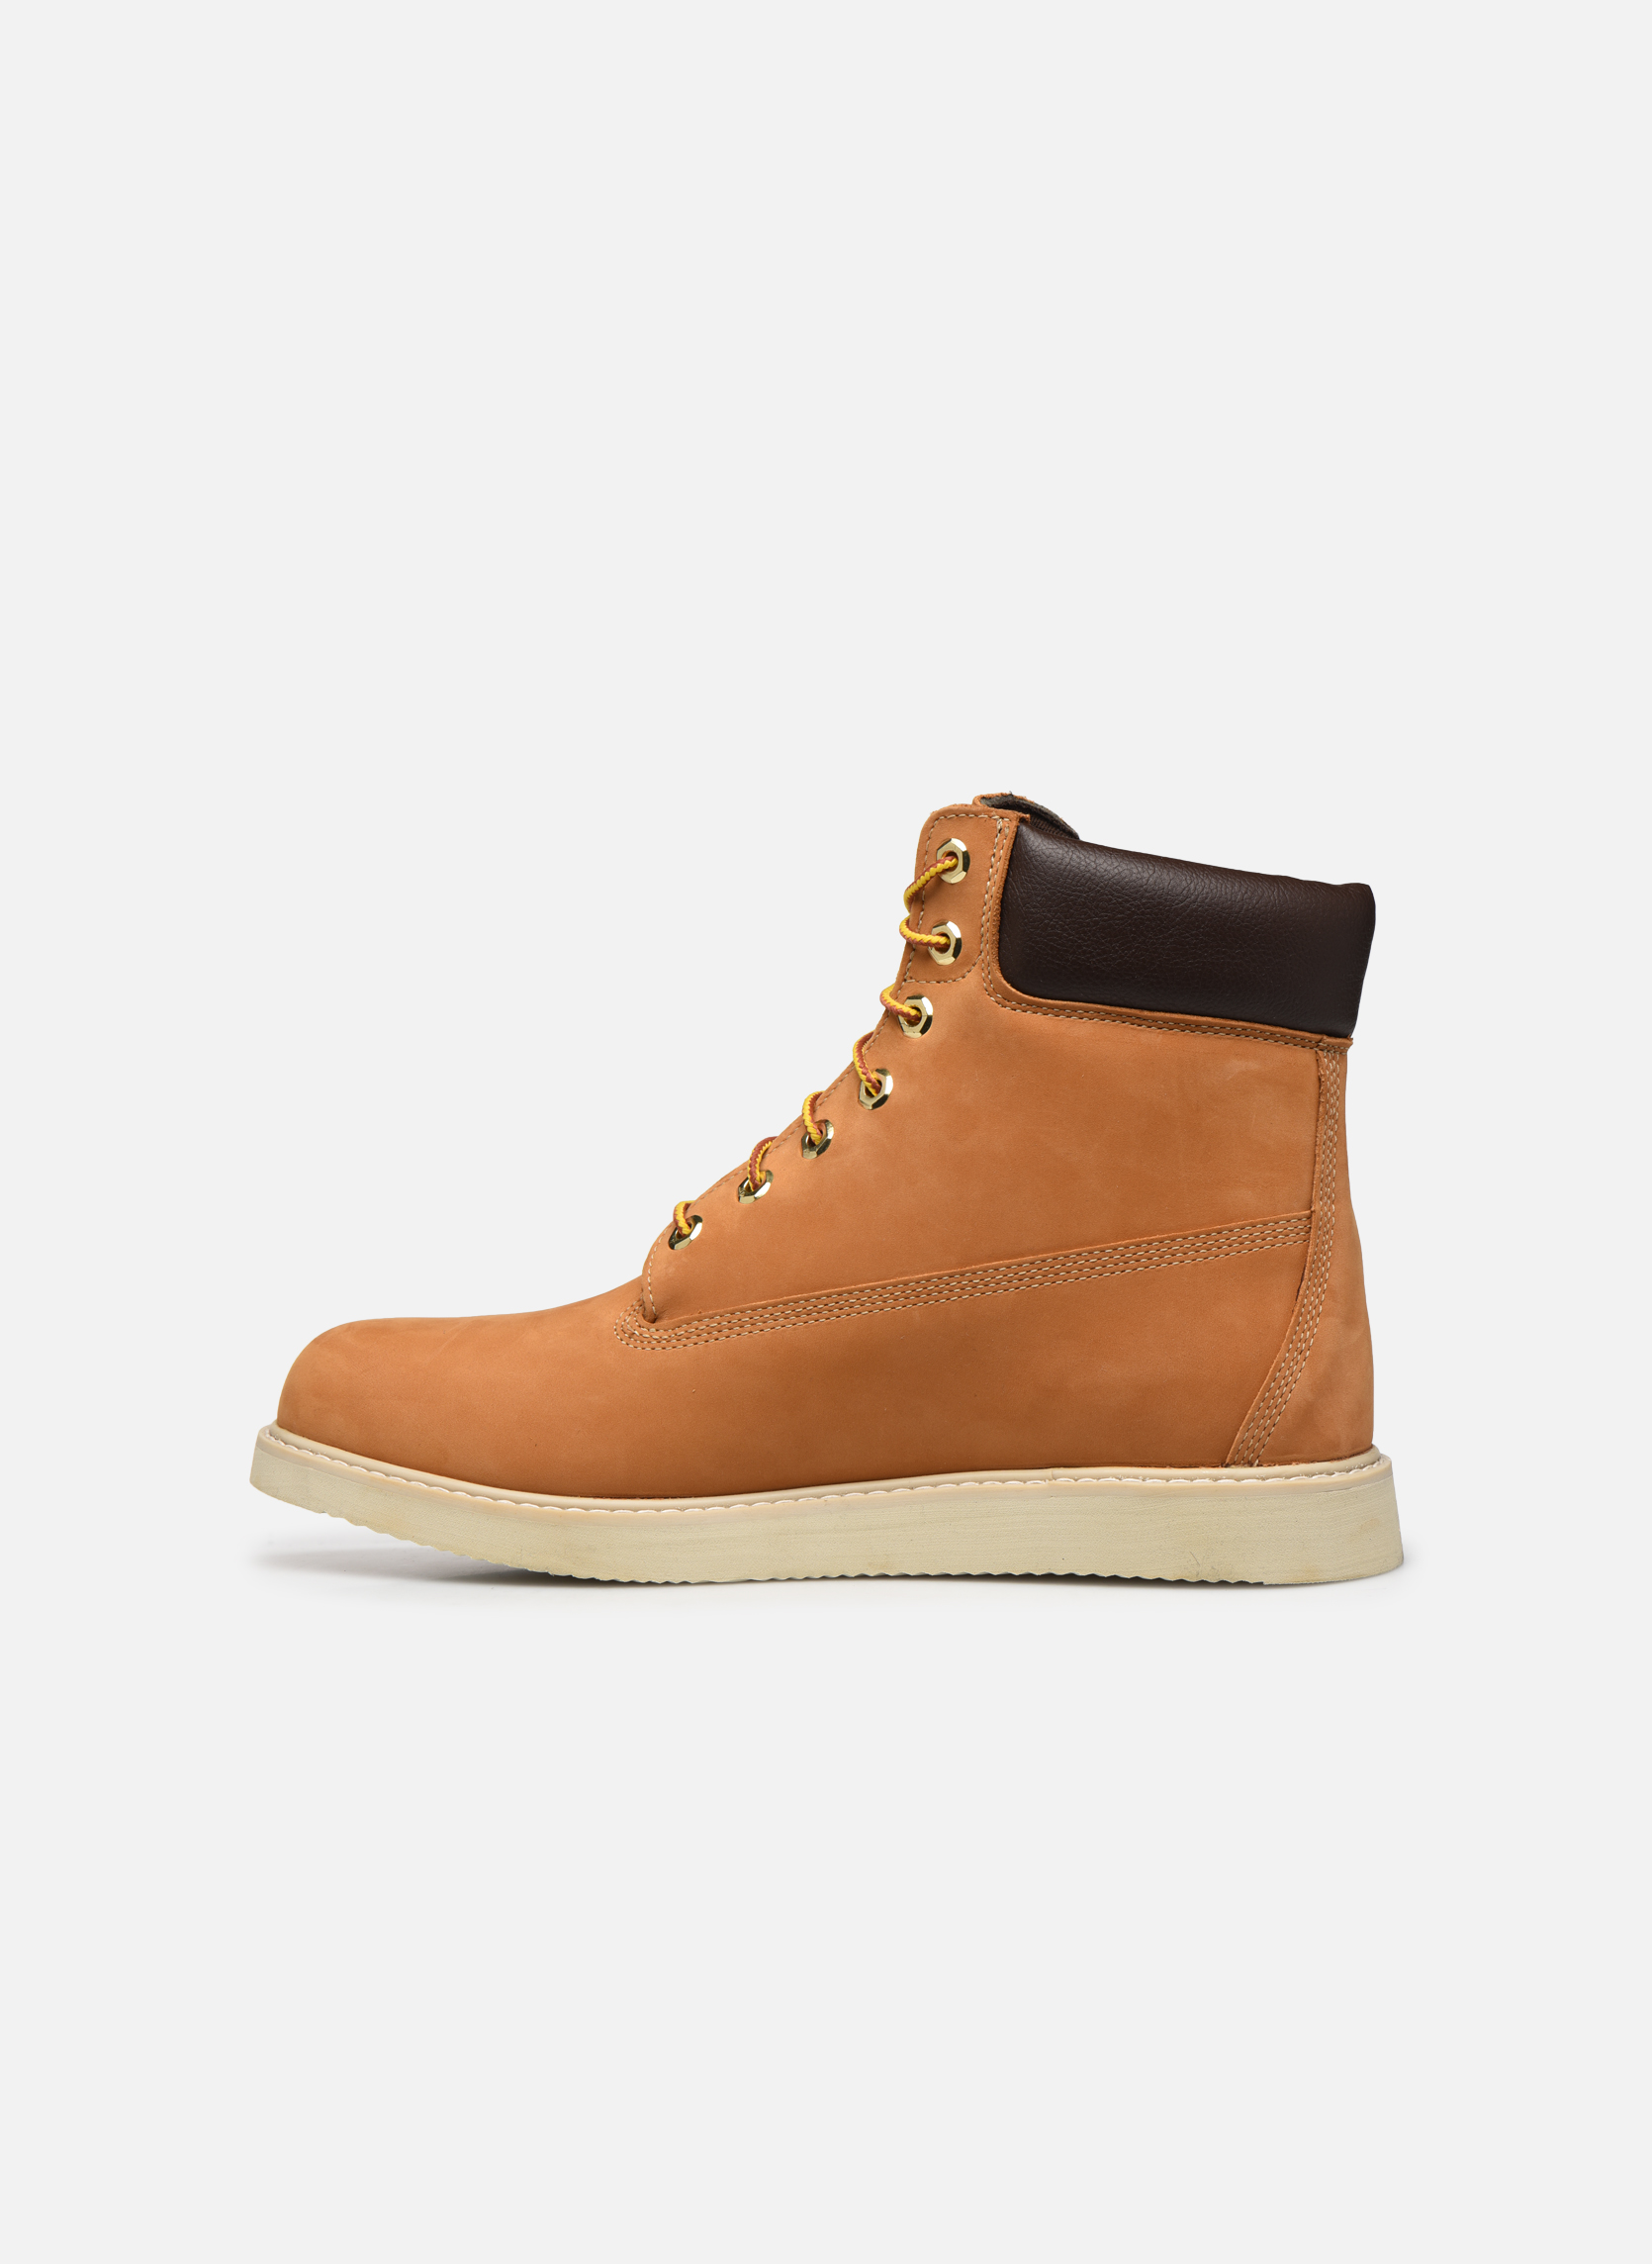 Bottines et boots Timberland 6 in wedge Marron vue face